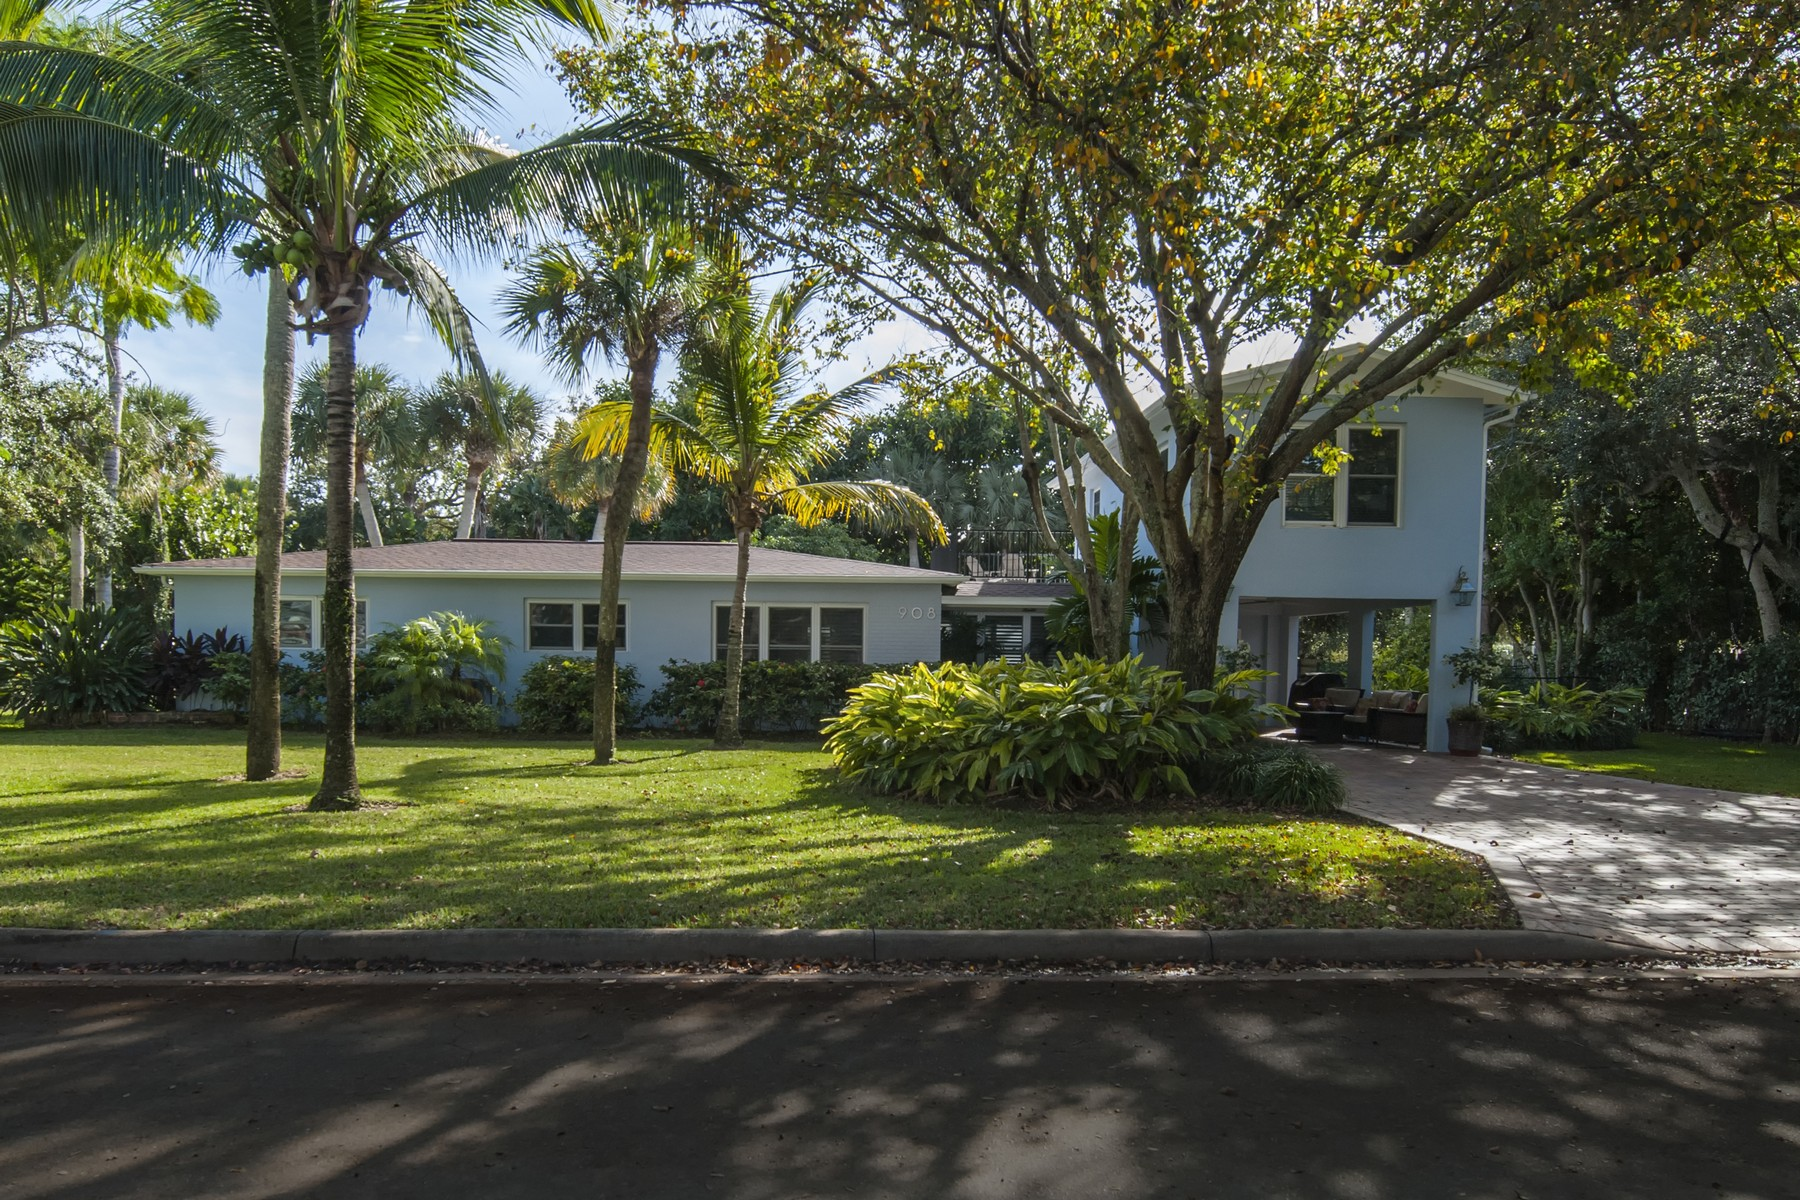 Single Family Home for Sale at Rare Find on the Island! 908 Coquina Lane Vero Beach, Florida 32963 United States